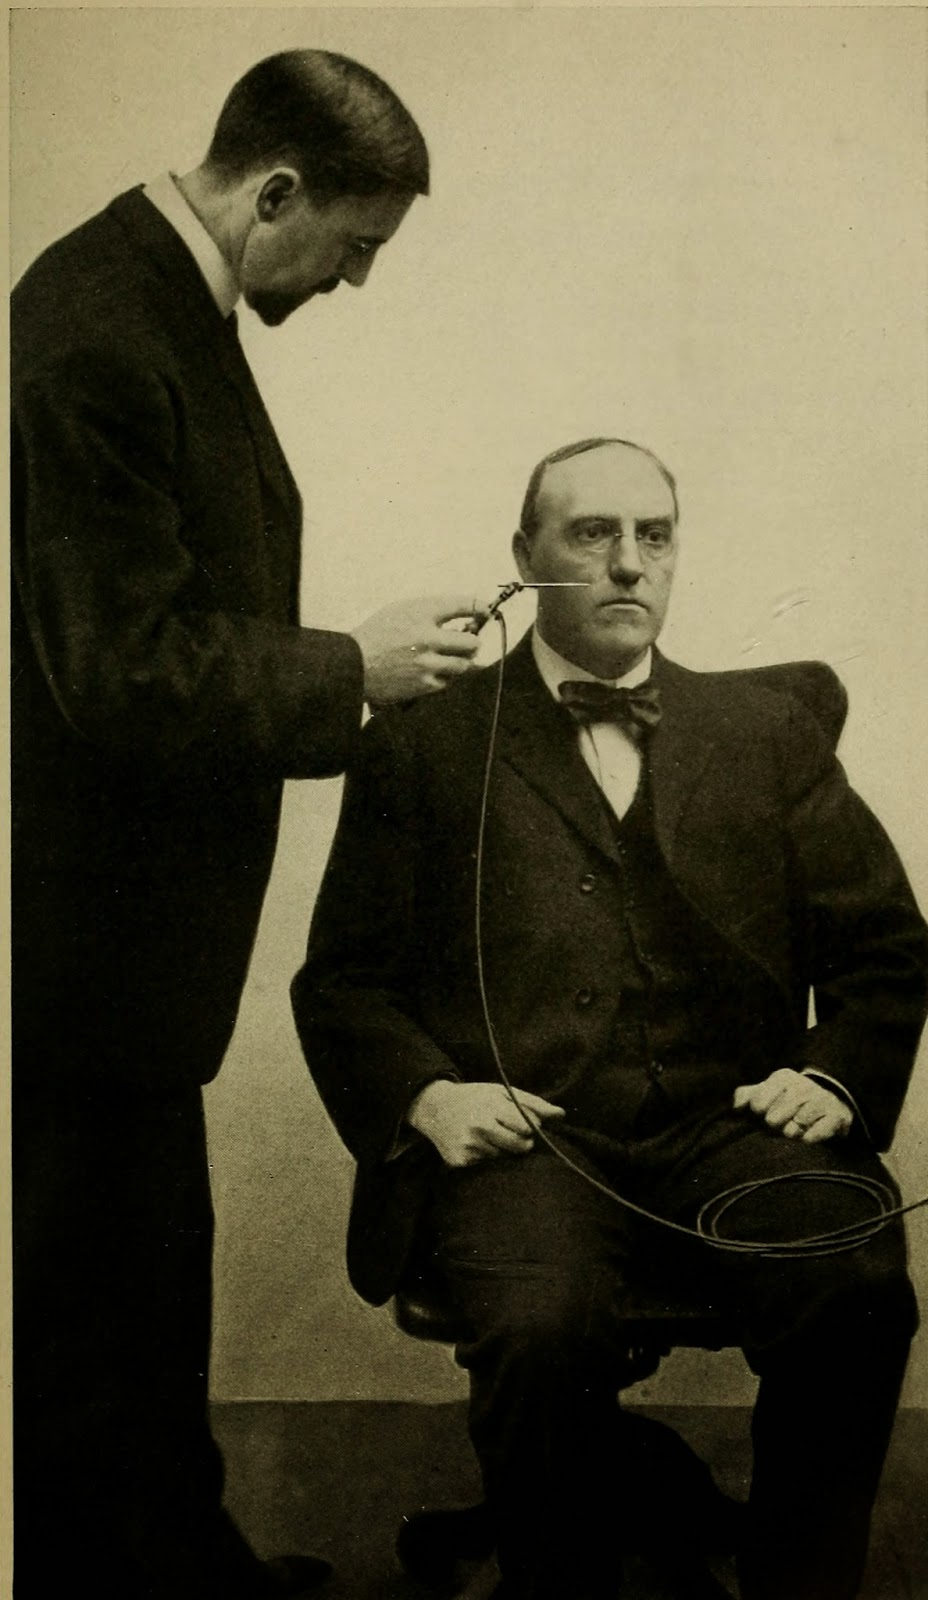 vintage everyday: High frequency electric currents in medicine and dentistry, 1910